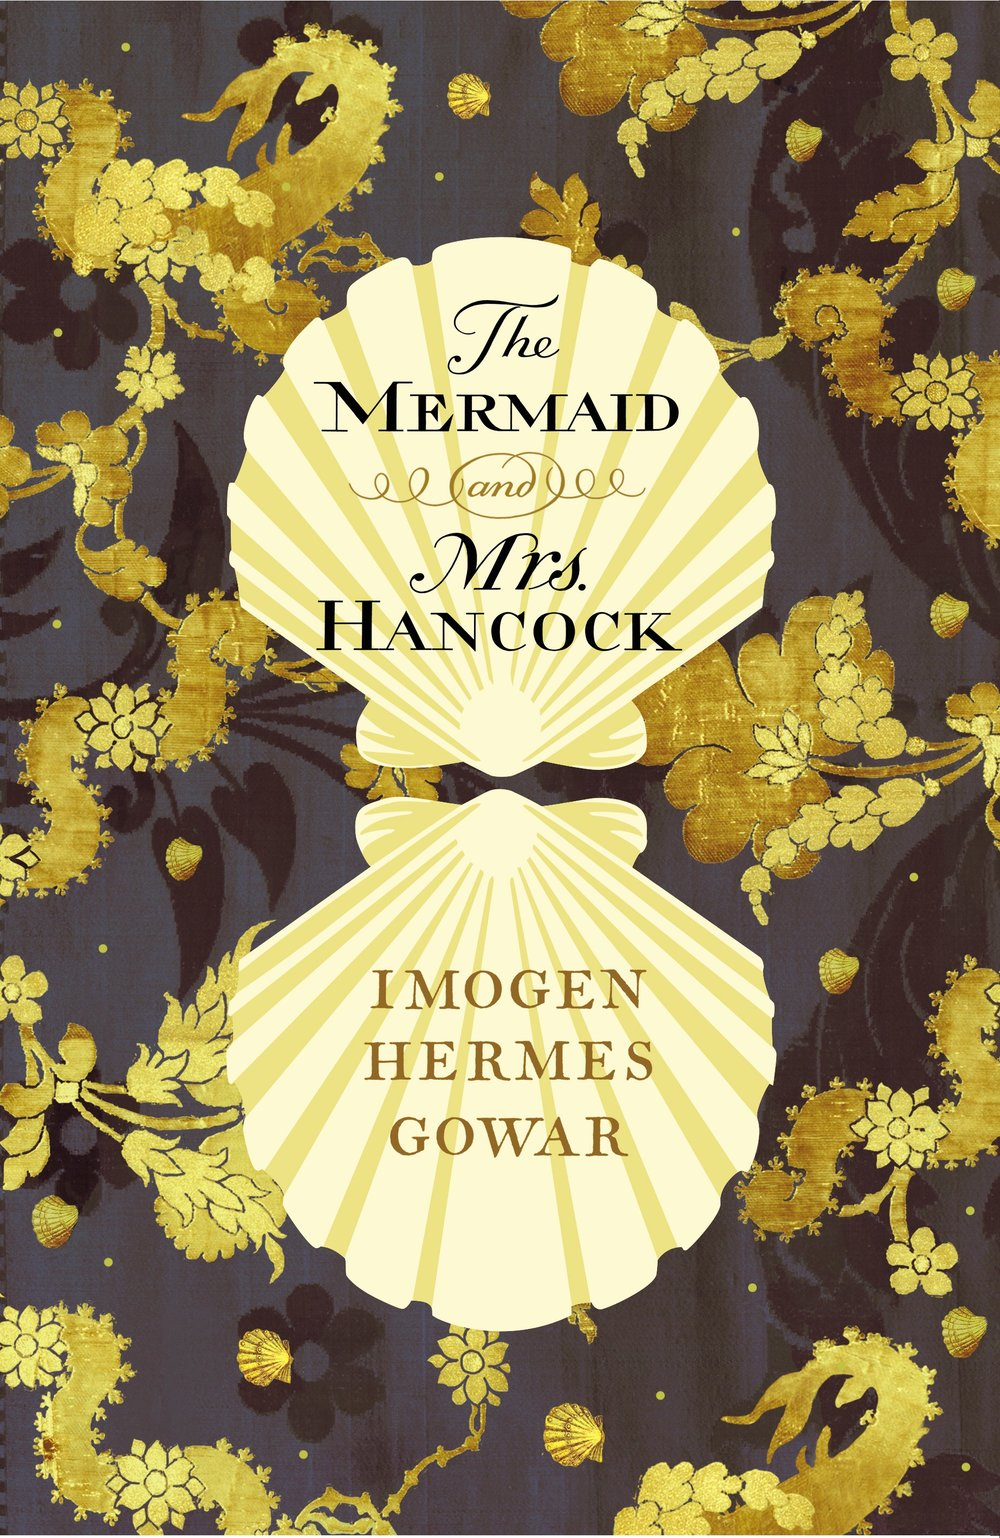 Mermaid-and-Mrs-Hancock-hb-jacket.jpg